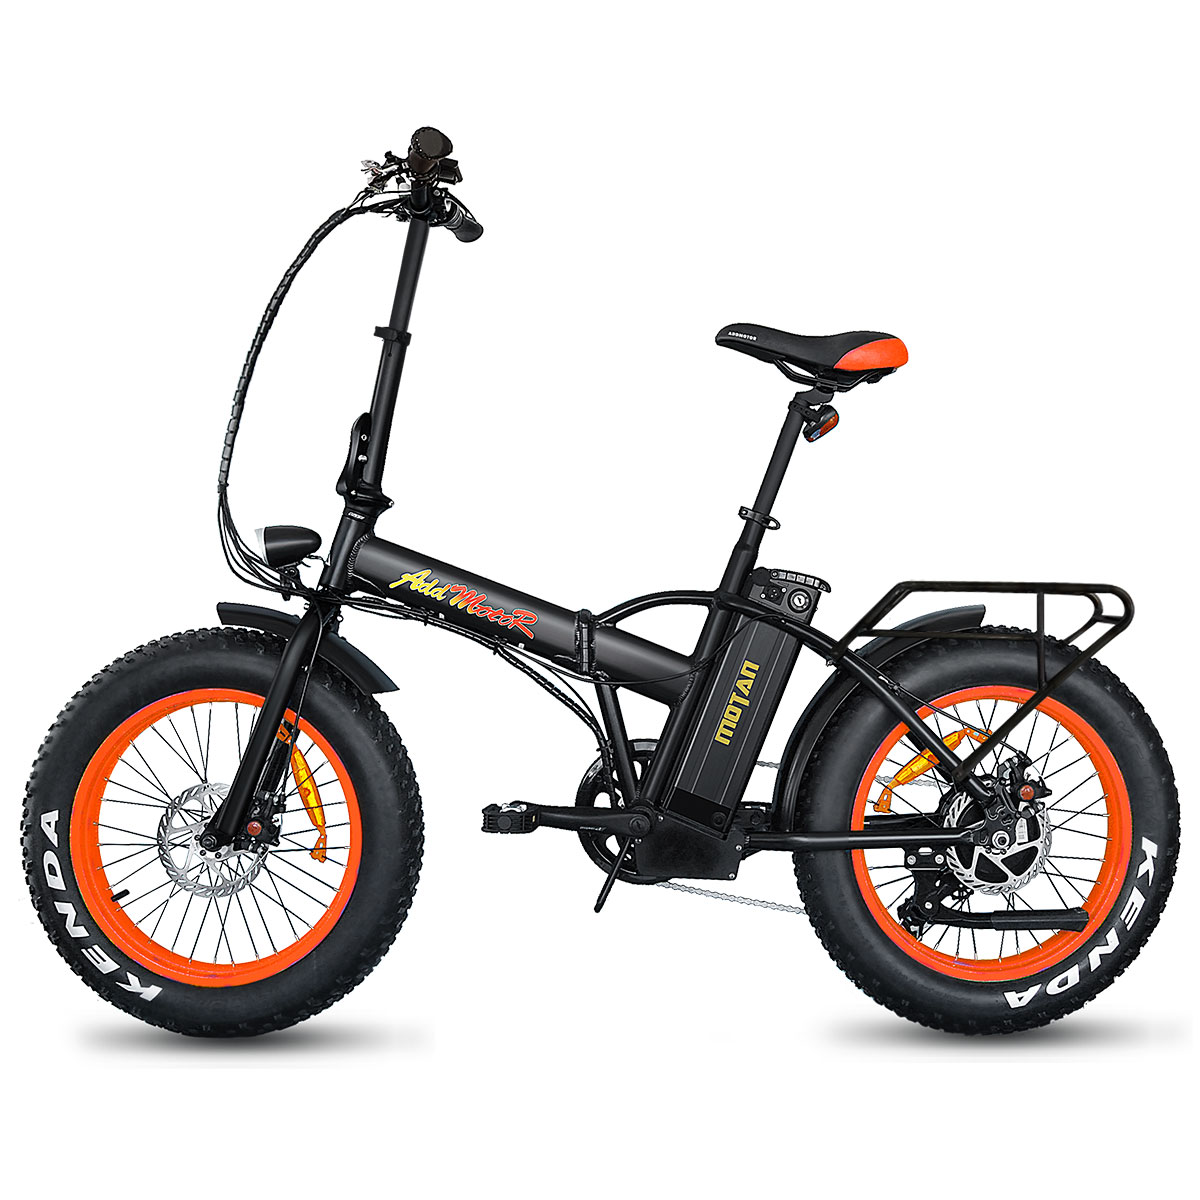 "Addmotor MOTAN Electric Bicycle Folding Bike 20"" Fat Tire E-Bikes 500W 48V Mountain Snow Bicycle M-150 Collapsible Bike"